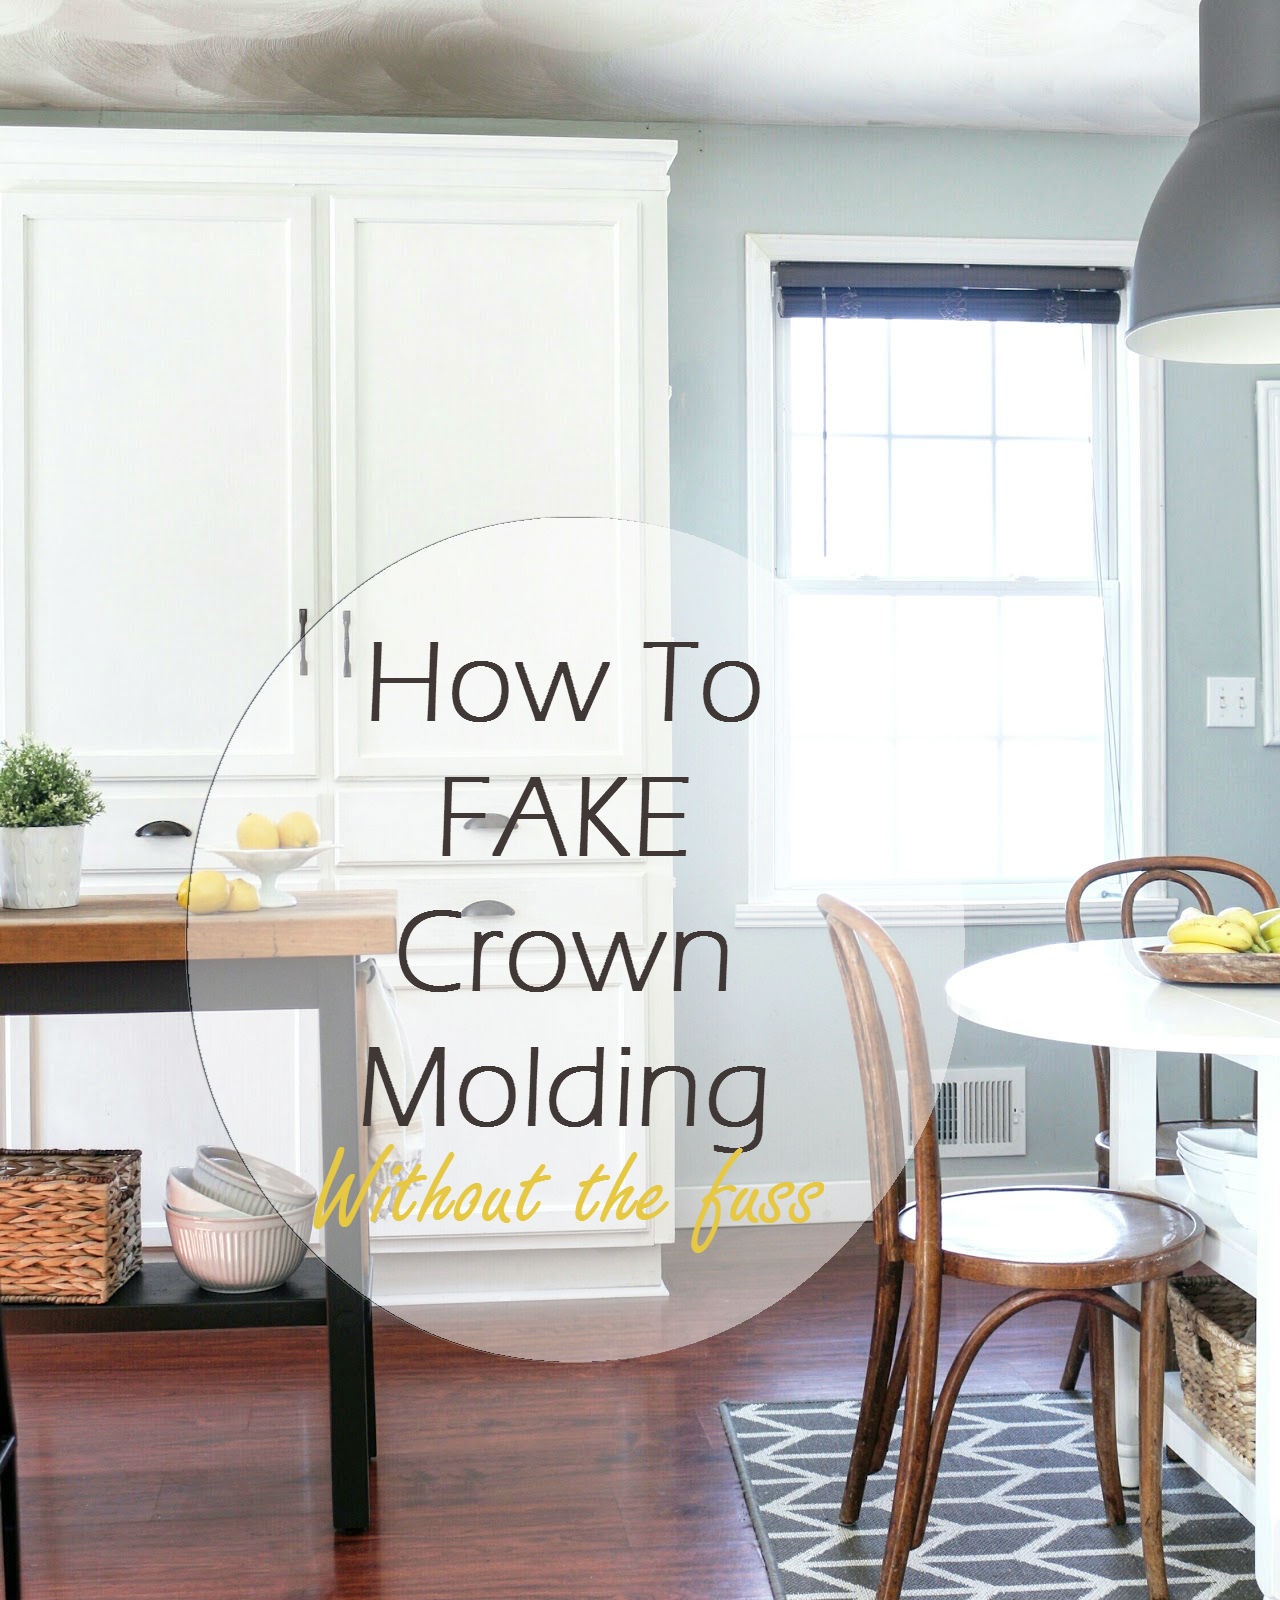 Lovely My DIY Kitchen: Cabinet Crown Molding, How To Fake The Look Without The Fuss